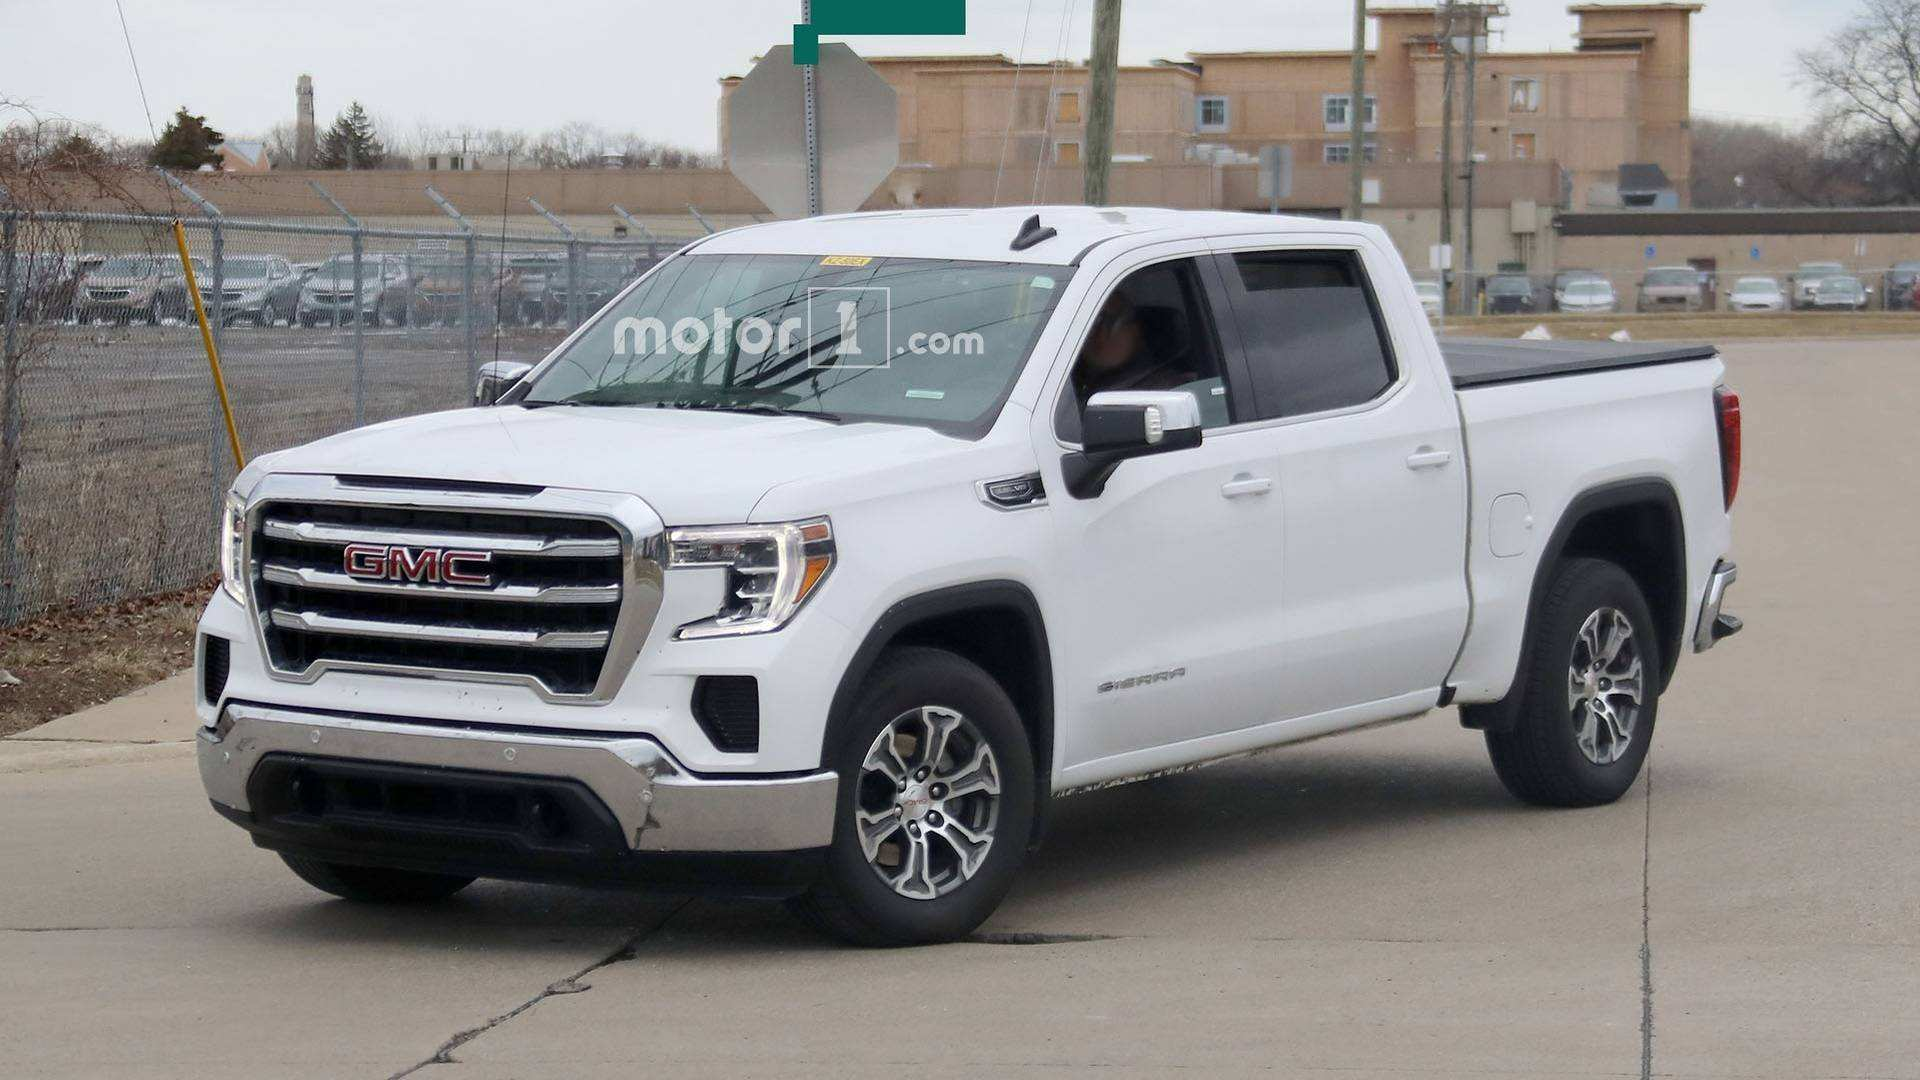 33 The Best Gmc Regular Cab 2019 Specs Picture with Best Gmc Regular Cab 2019 Specs